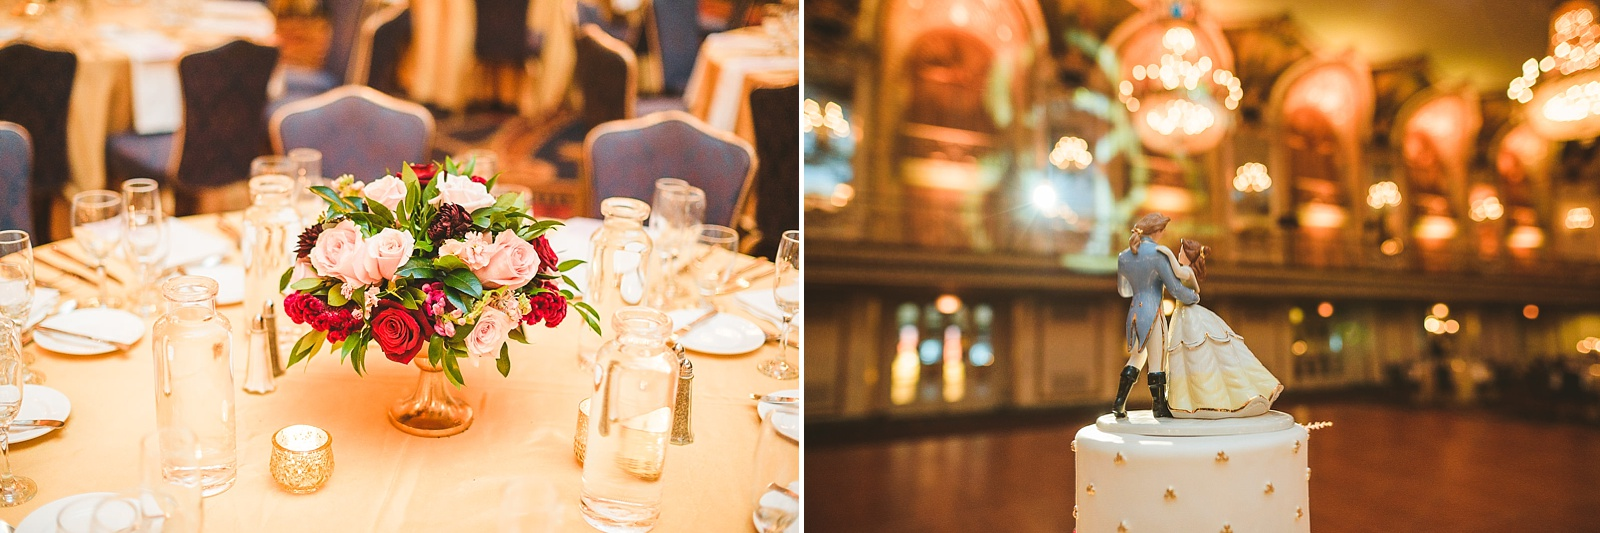 54 chicago hilton wedding details - Hilton Chicago Wedding Photographer // Sarah + Aaron